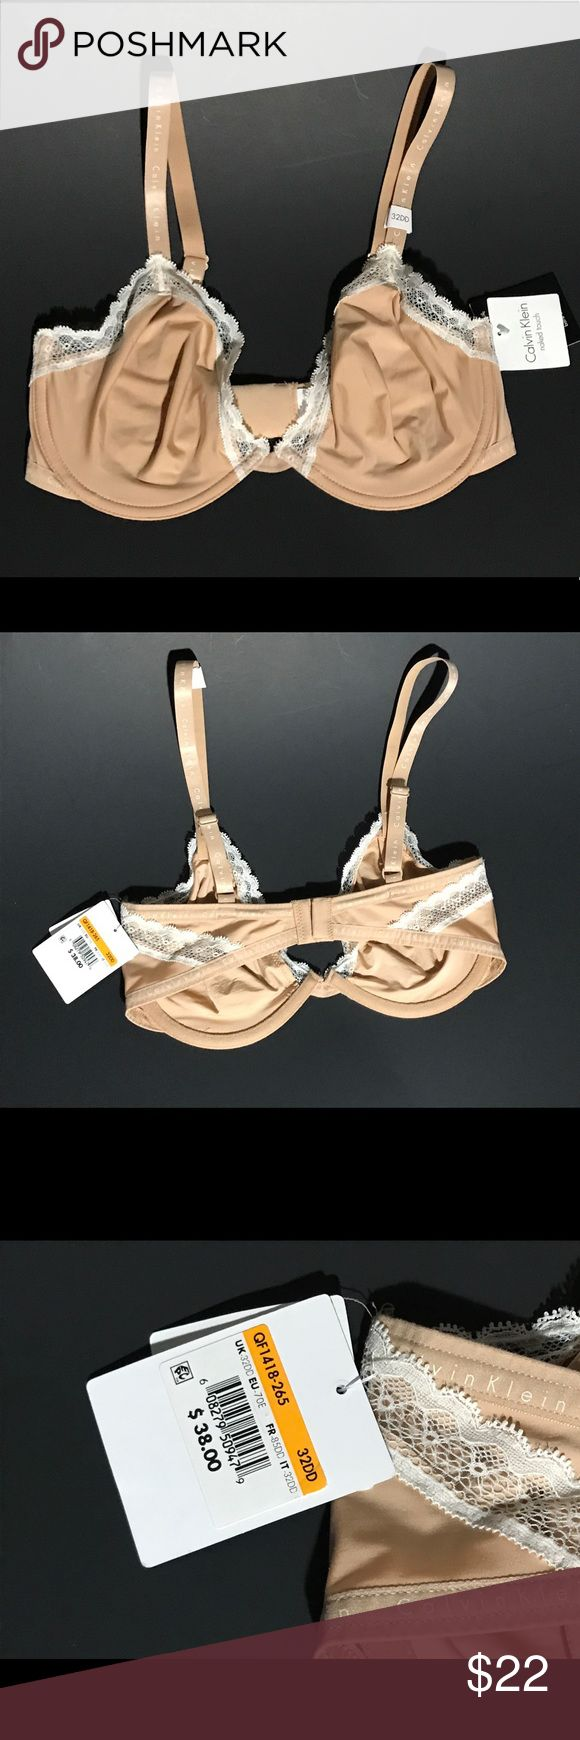 "Calvin Klein 32DD signature unlined t-shirt bra New Women's Calvin Klein 32DD Signature Naked Touch Unlined Underwire T-shirt Bra with lace trim. Size: 32DD Color: Beige, nude, flesh tone, tan UPC: 608279509479 Style No.: QF1418-265 Materials: 71"" Nylon & 29% Elastane  Condition: New with tags. Smoke free. Pet free.   Please let me know if you have any questions before purchasing this bra. Calvin Klein Underwear Intimates & Sleepwear Bras"